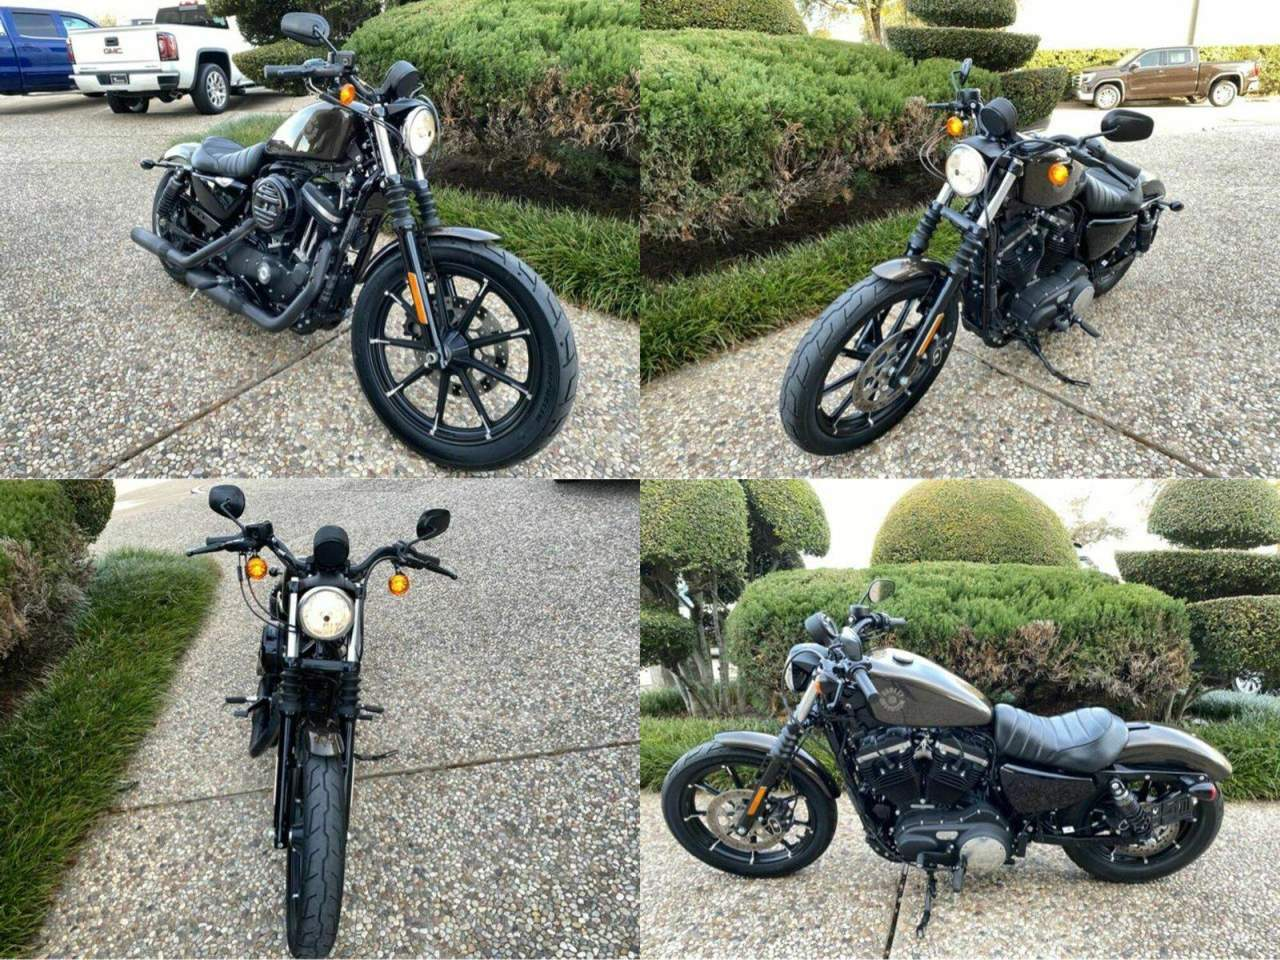 2020 Harley-Davidson Iron 883 XL883N Gray used for sale